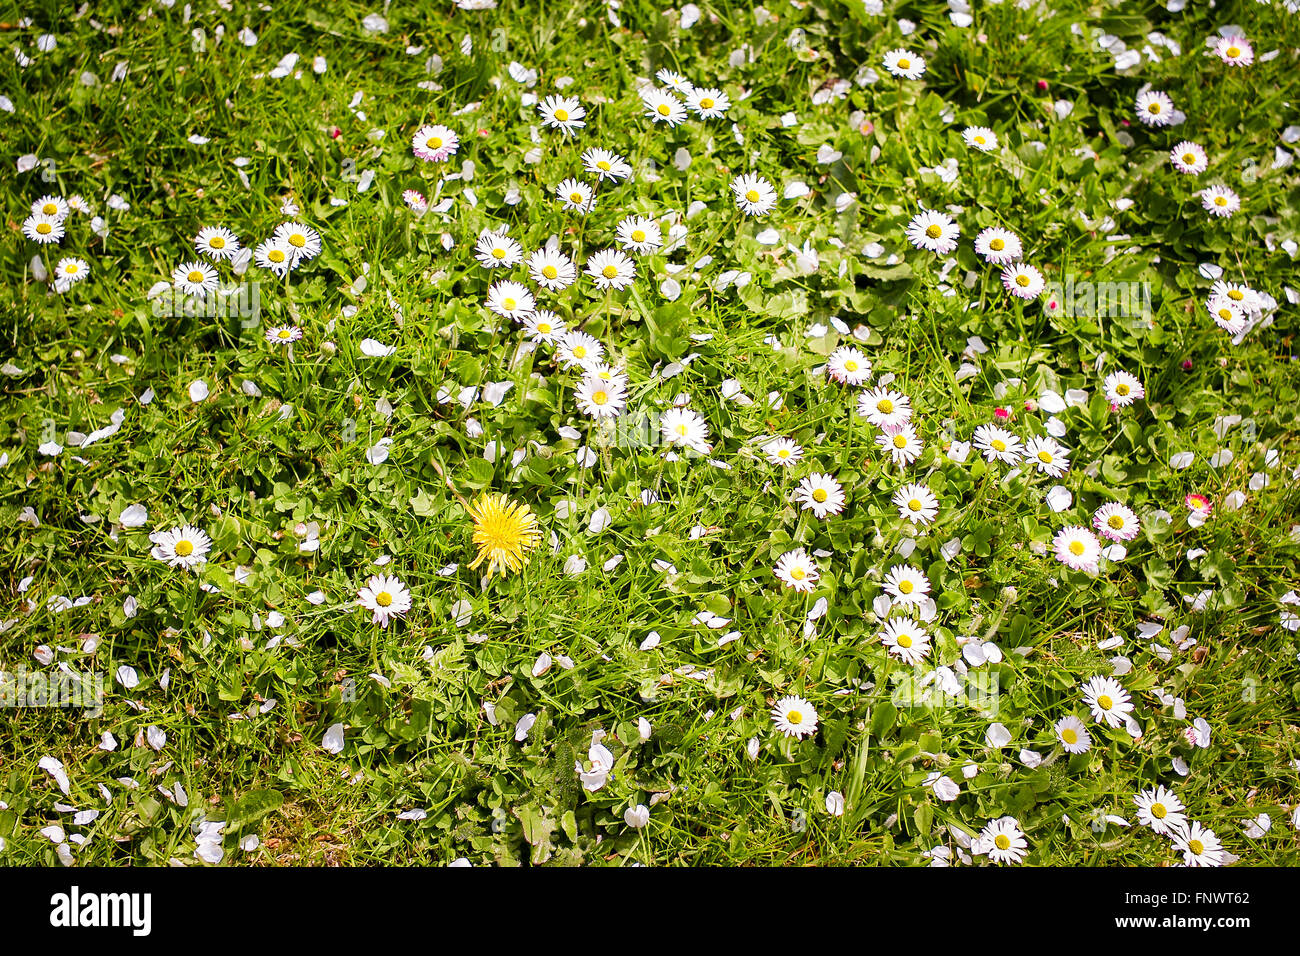 Daisies colonizing an ordinary garden lawn - Stock Image